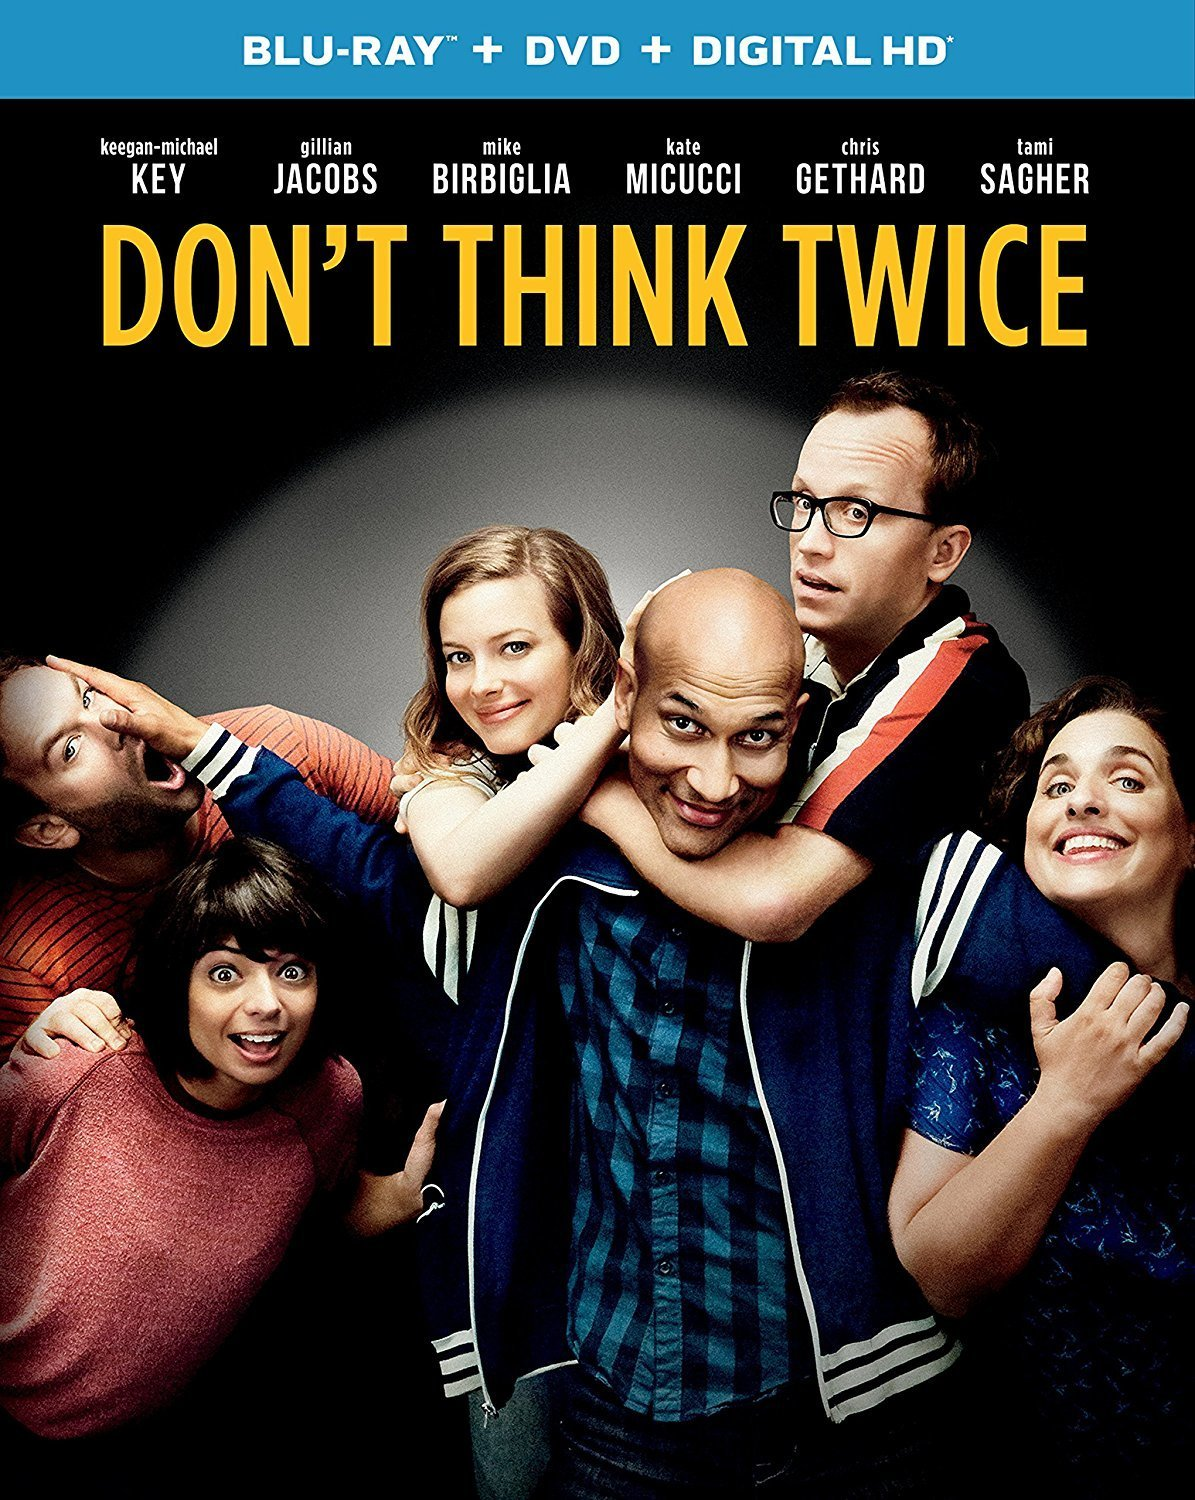 DON'T THINK TWICE Blu-ray